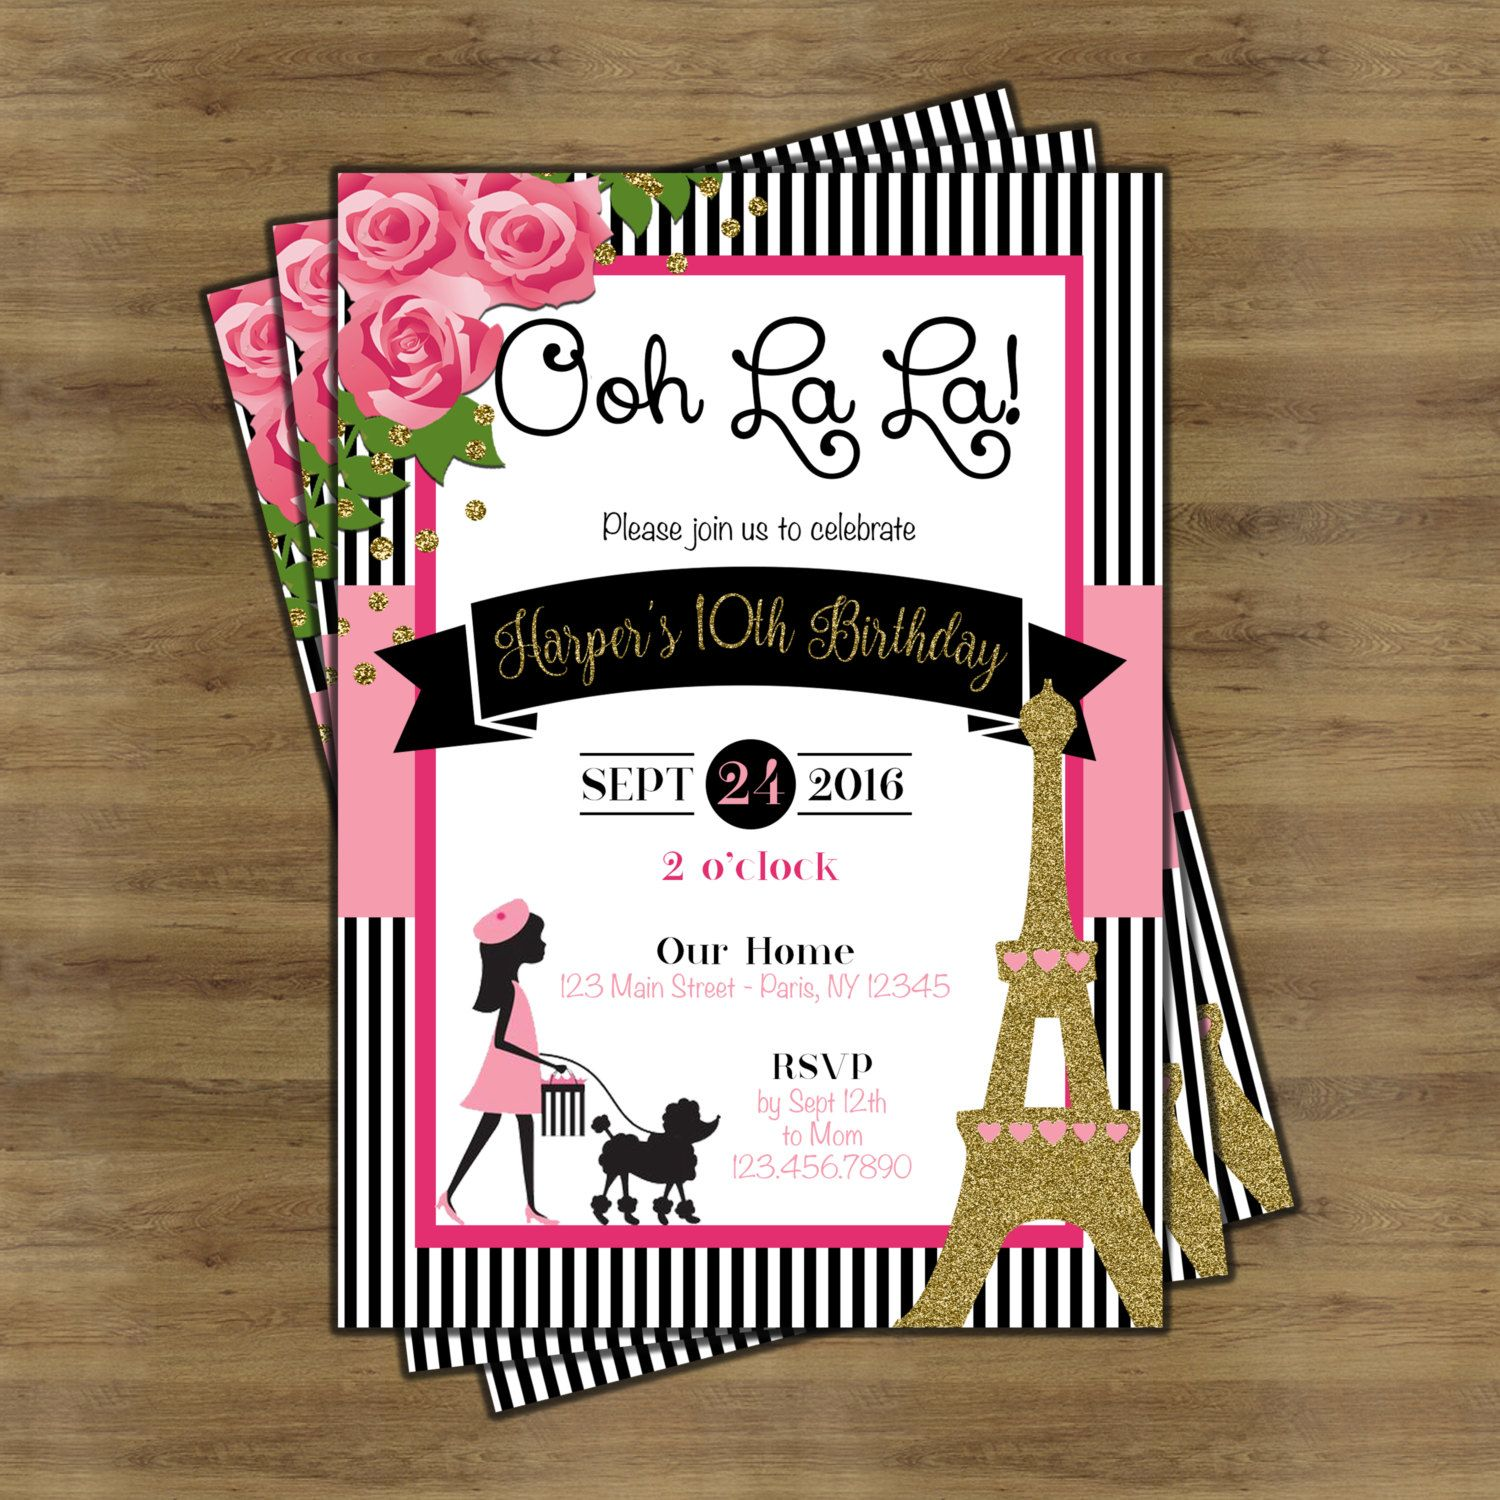 Paris invitation paris theme party paris themed invitations paris paris birthday invitation paris invitation paris themed invitations paris party invitations paris invites french theme party by sophisticatedswan on filmwisefo